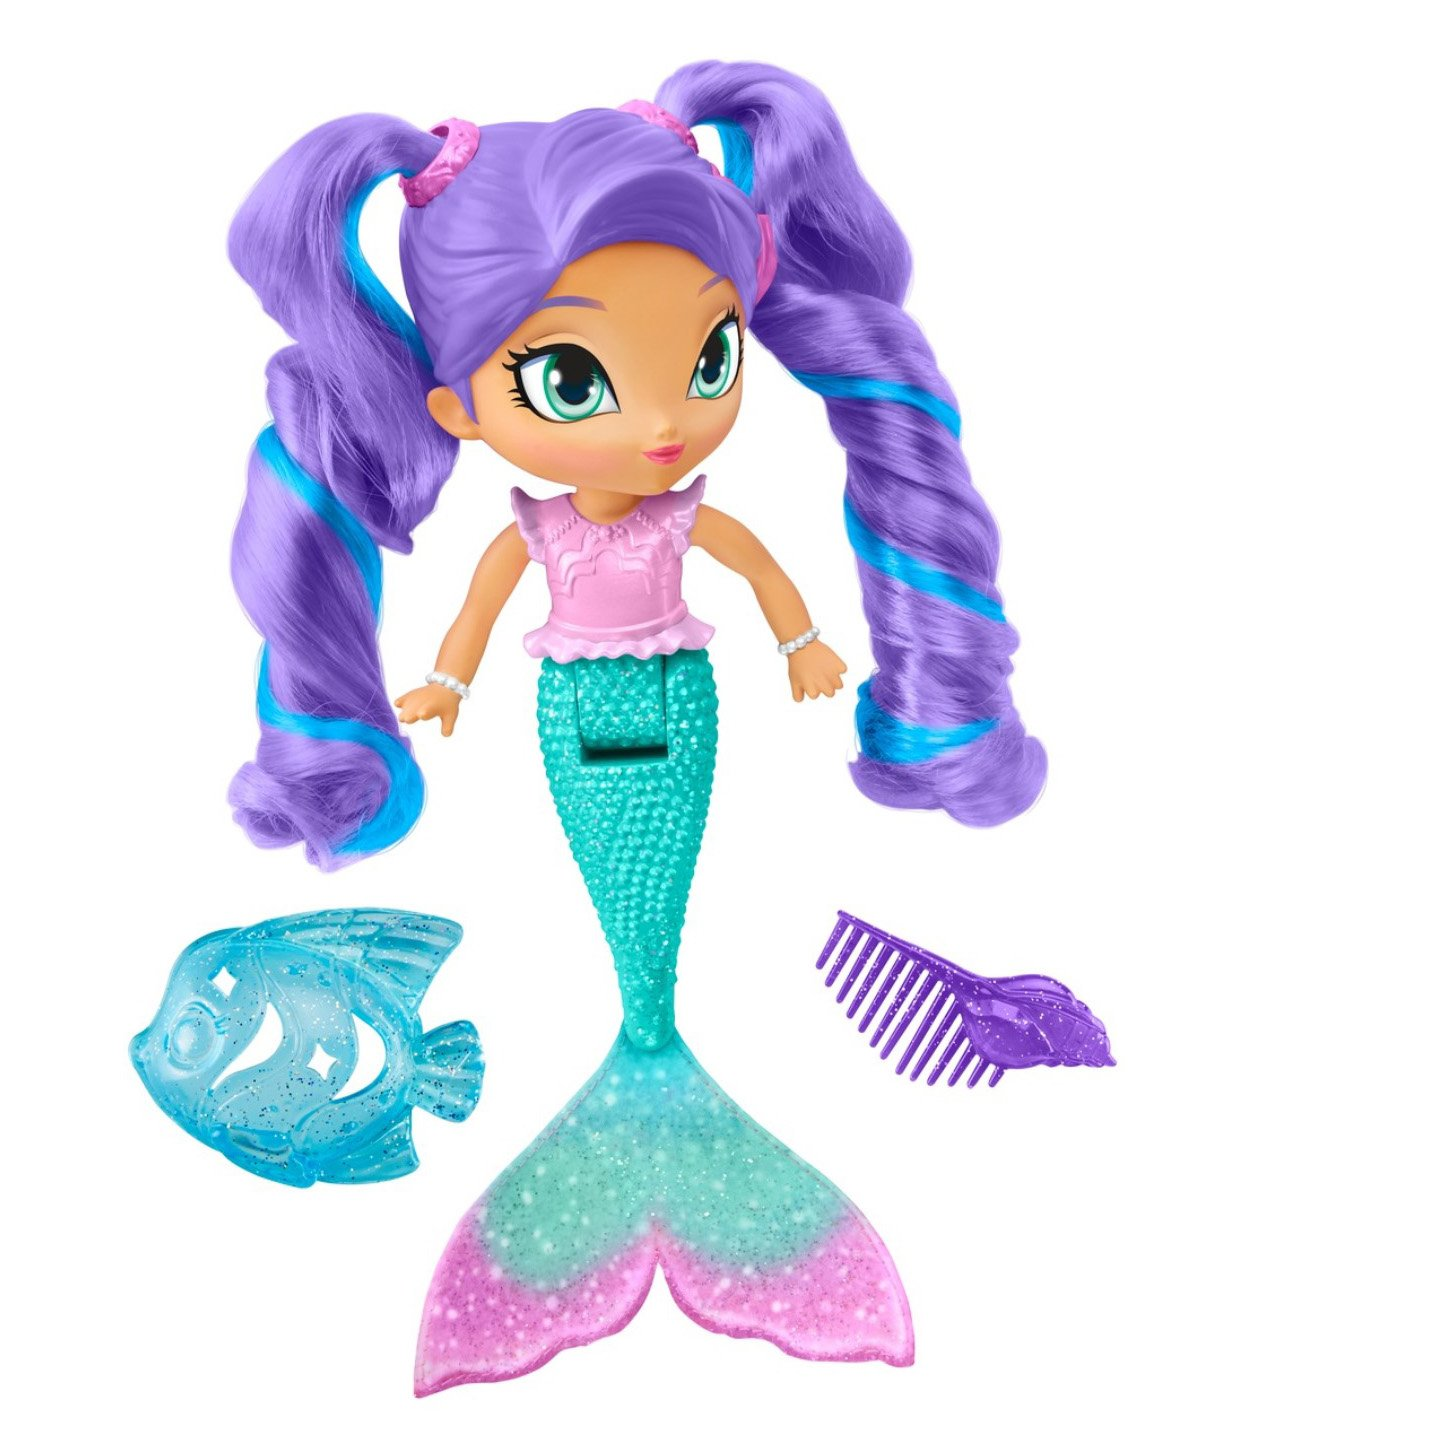 Fisher-Price Nickelodeon Shimmer & Shine, Magic Mermaid Nila Mattel - Import FOB (Hong Kong) DTK72